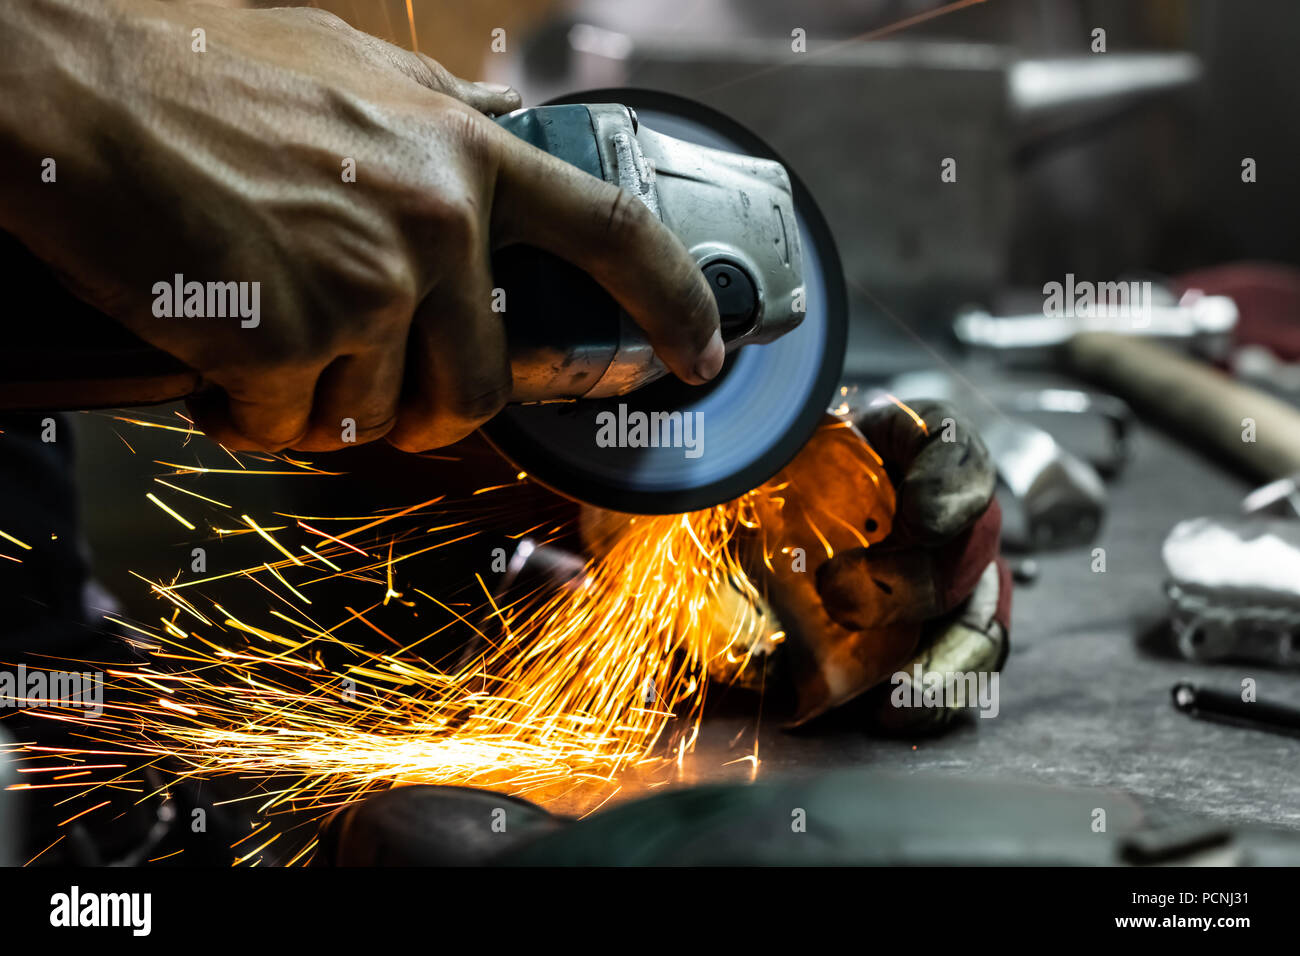 Male metal worker polishing and finalising piece of medieval armour suit. Man hands treating metal parts of hardware in a workshop with angle grinder. - Stock Image